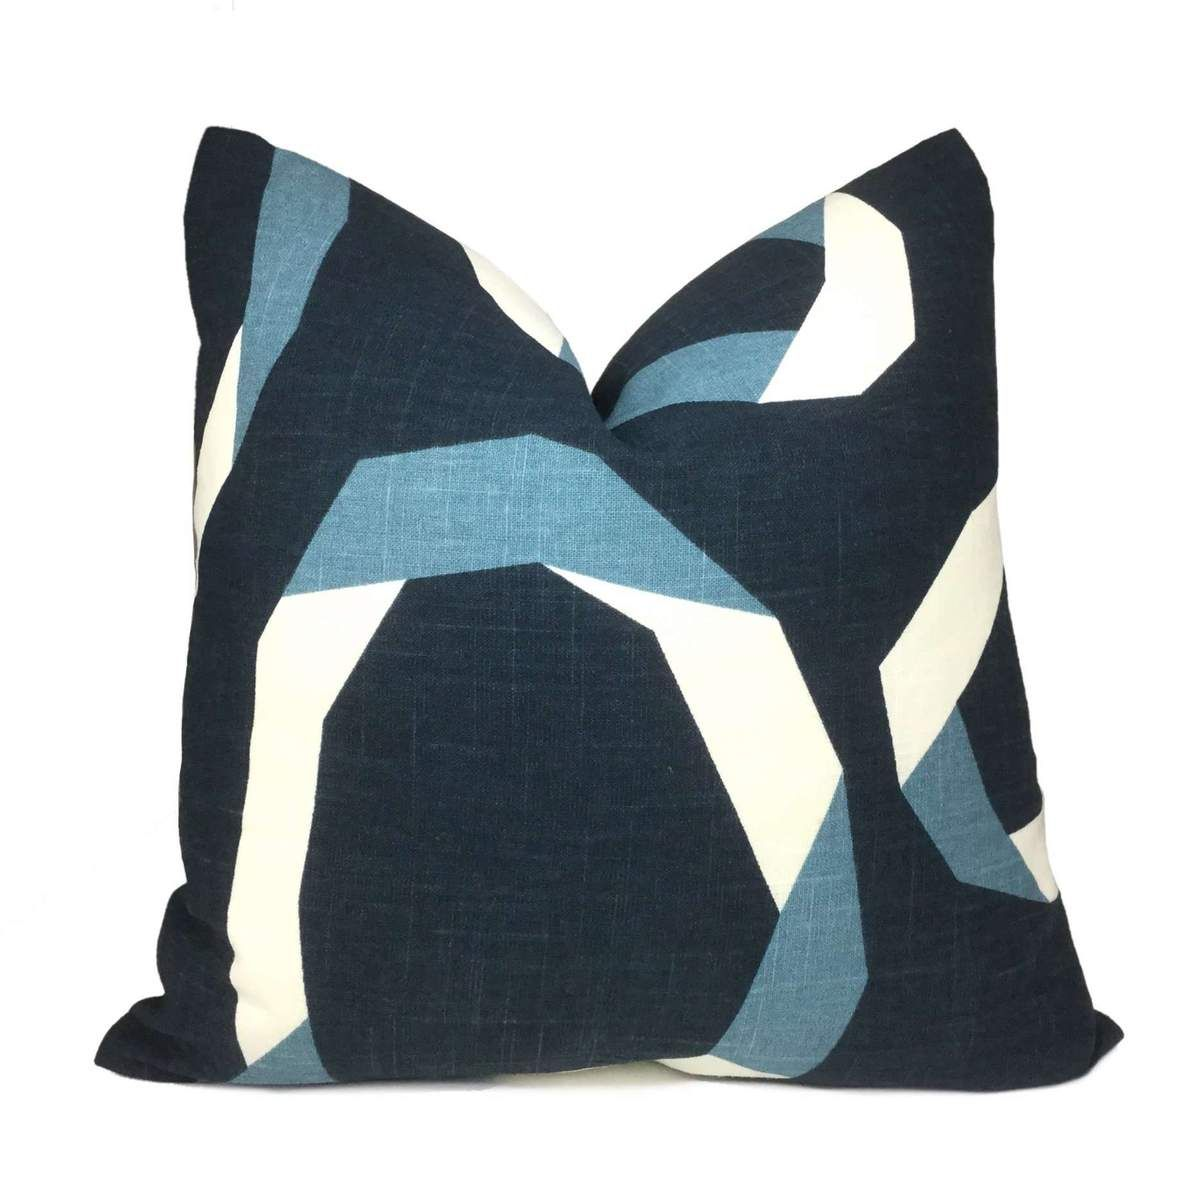 Robert allen vento ribbon blue white pillow cover in pillows